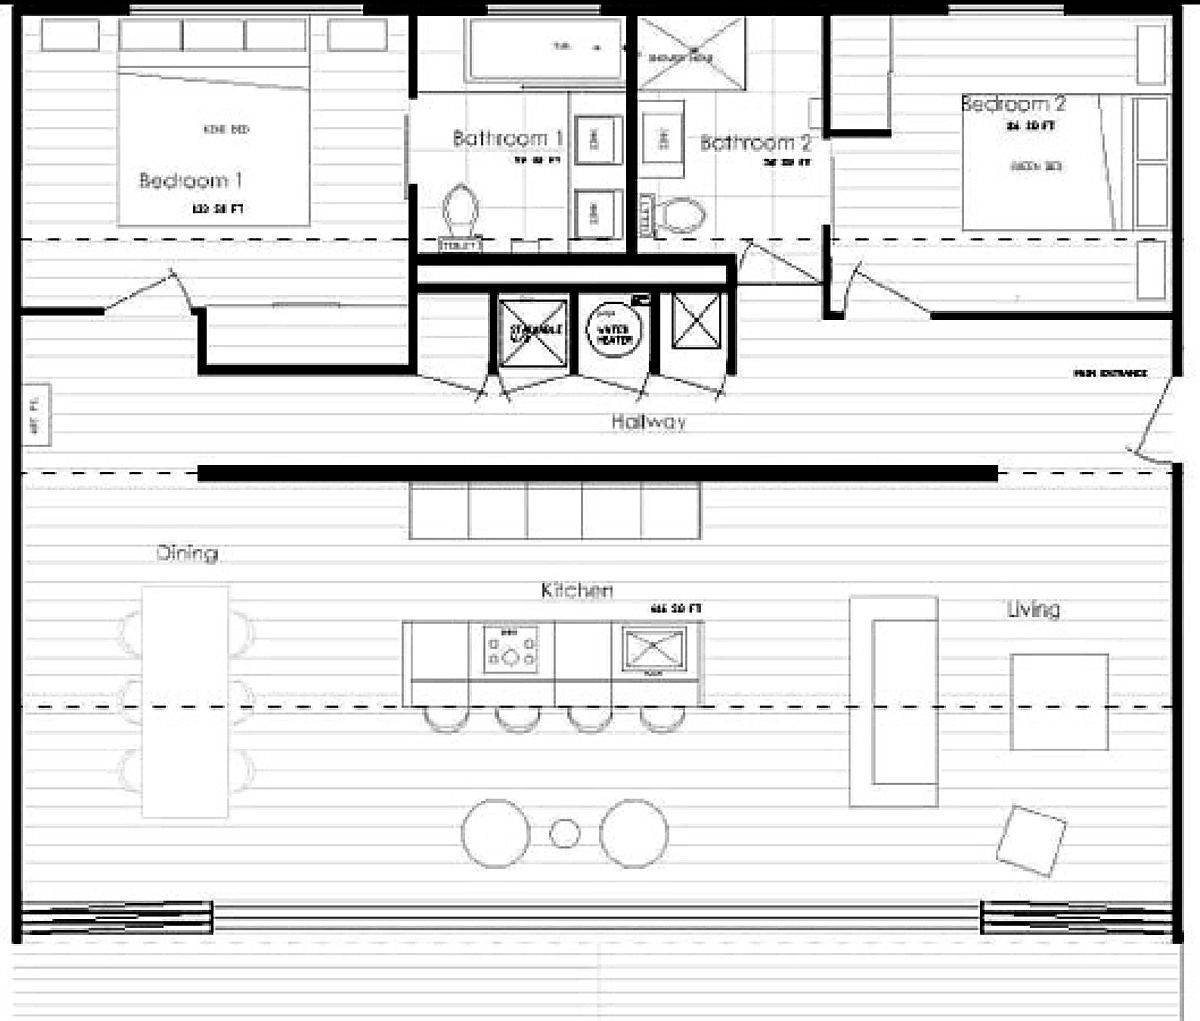 container home floor plan iq hause christopher bord archinect architecture pinterest. Black Bedroom Furniture Sets. Home Design Ideas